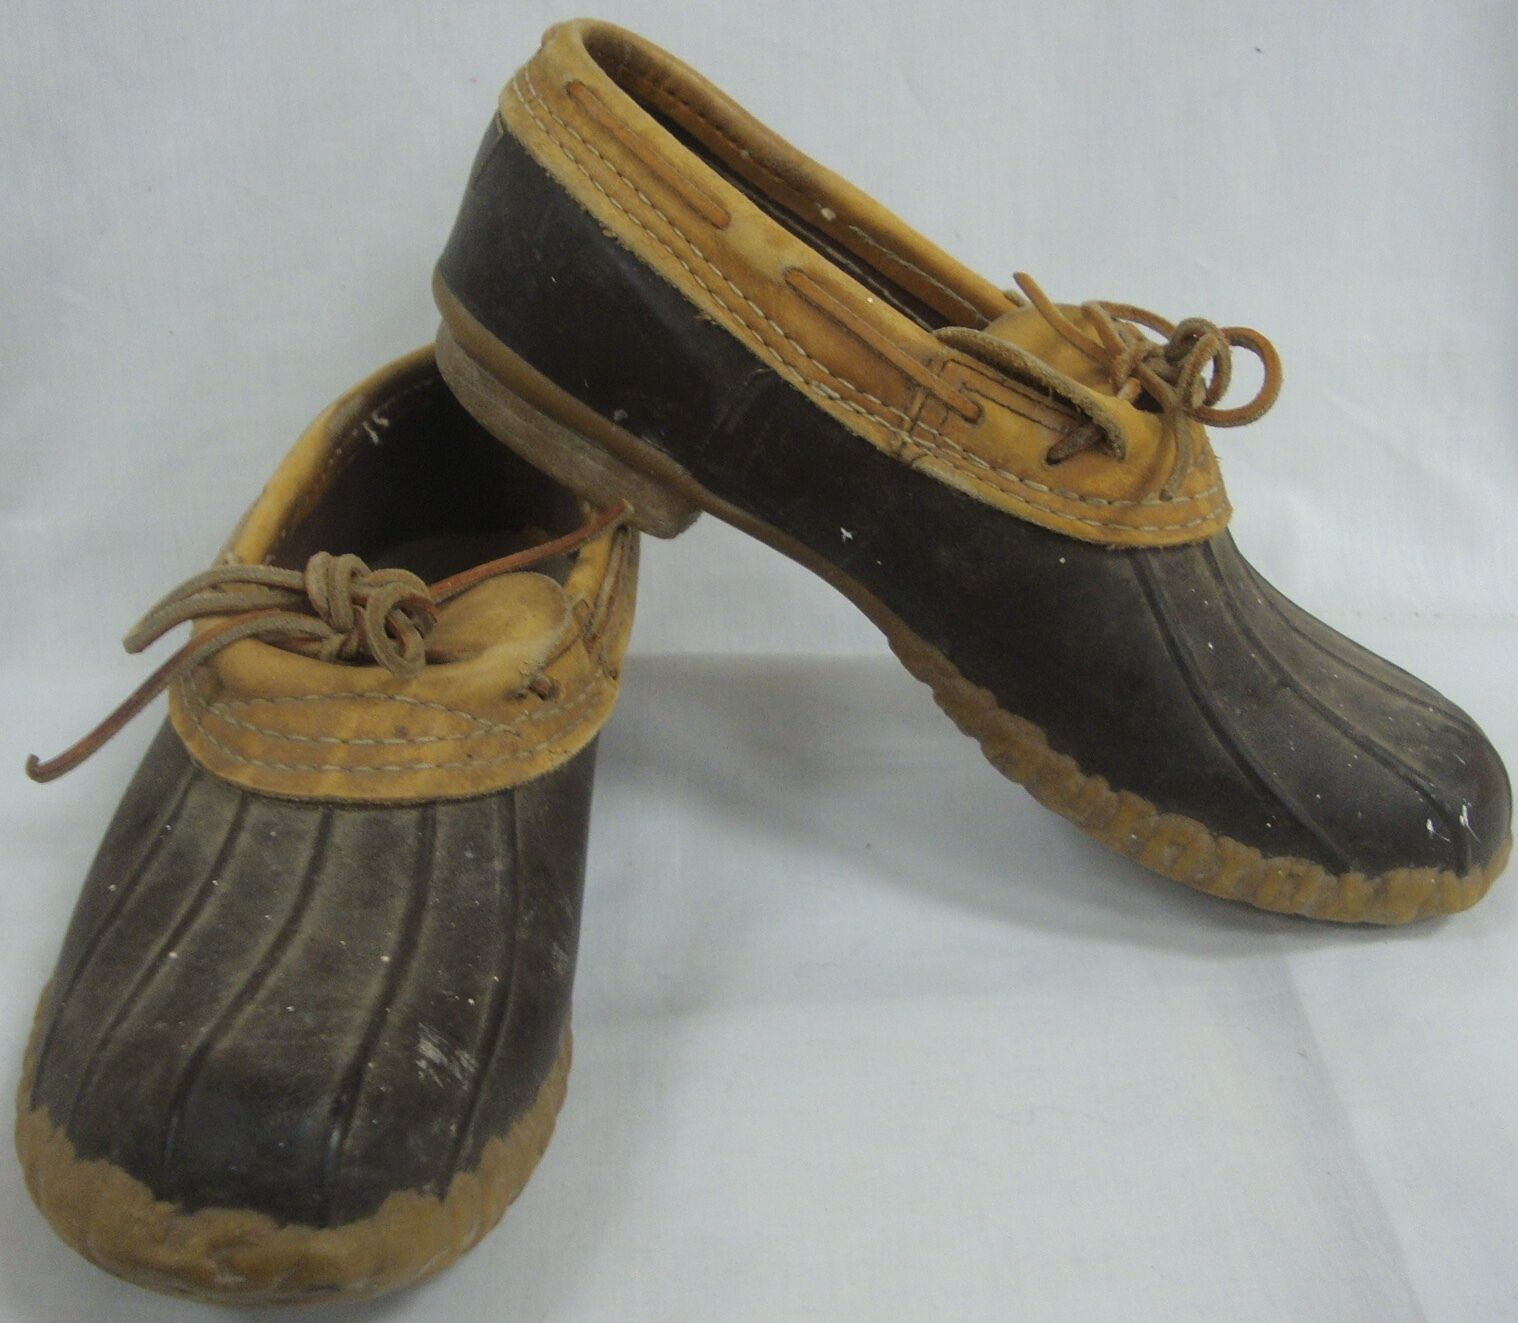 LL BEAN MENS VINTAGE LOW BOOTS MOC GUMSHOE BROWN LEATHER ANKLE DUCK HUNTING SZ 9